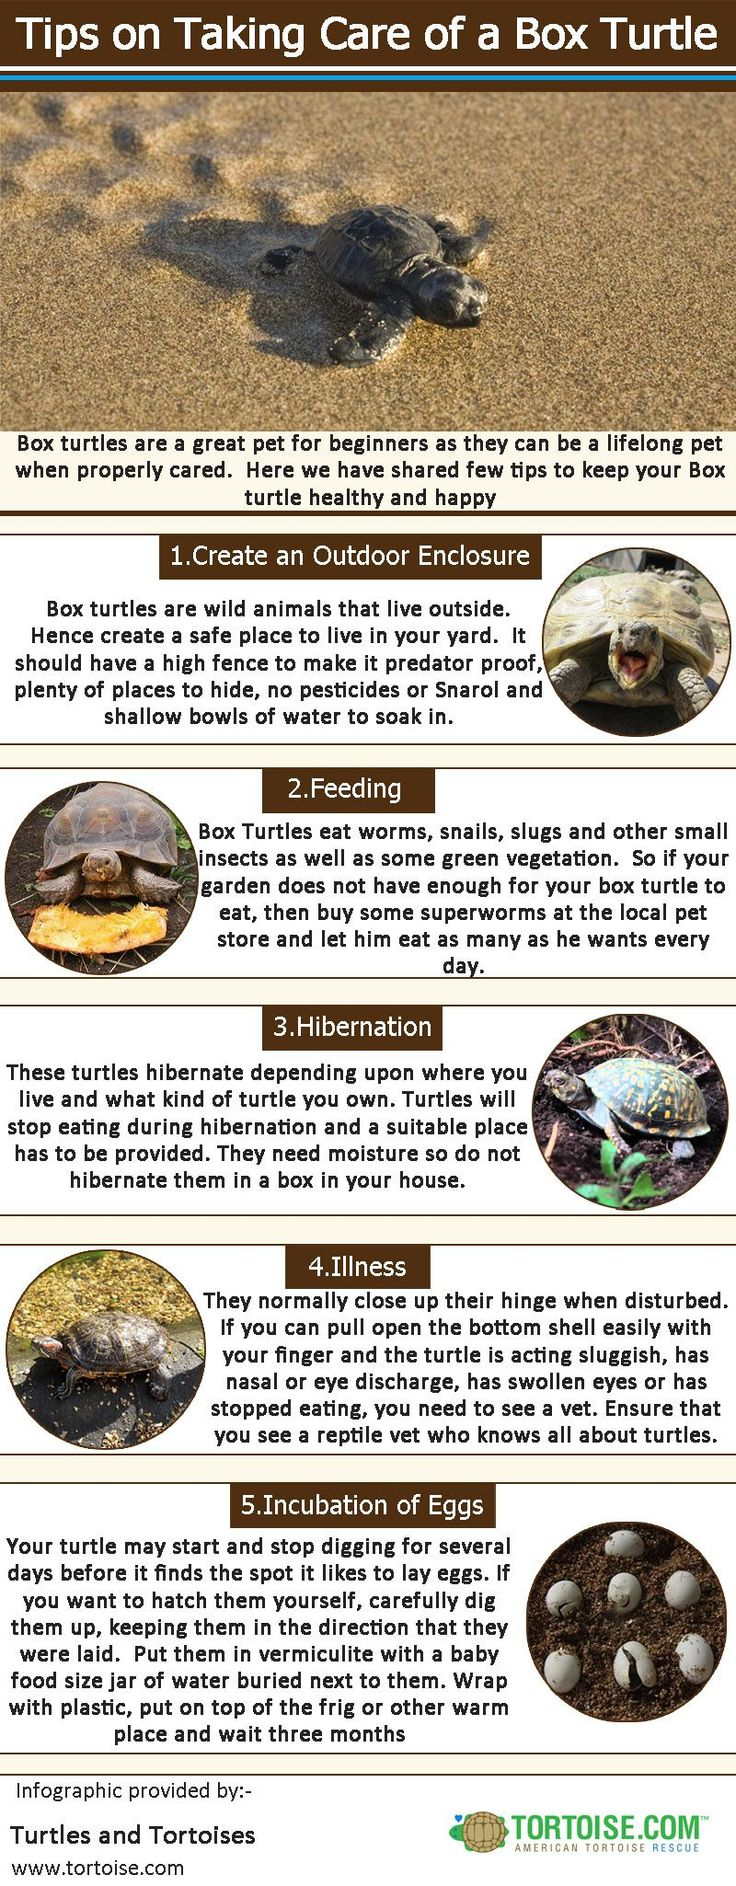 Box turtles are a great pet for beginners as they can be a